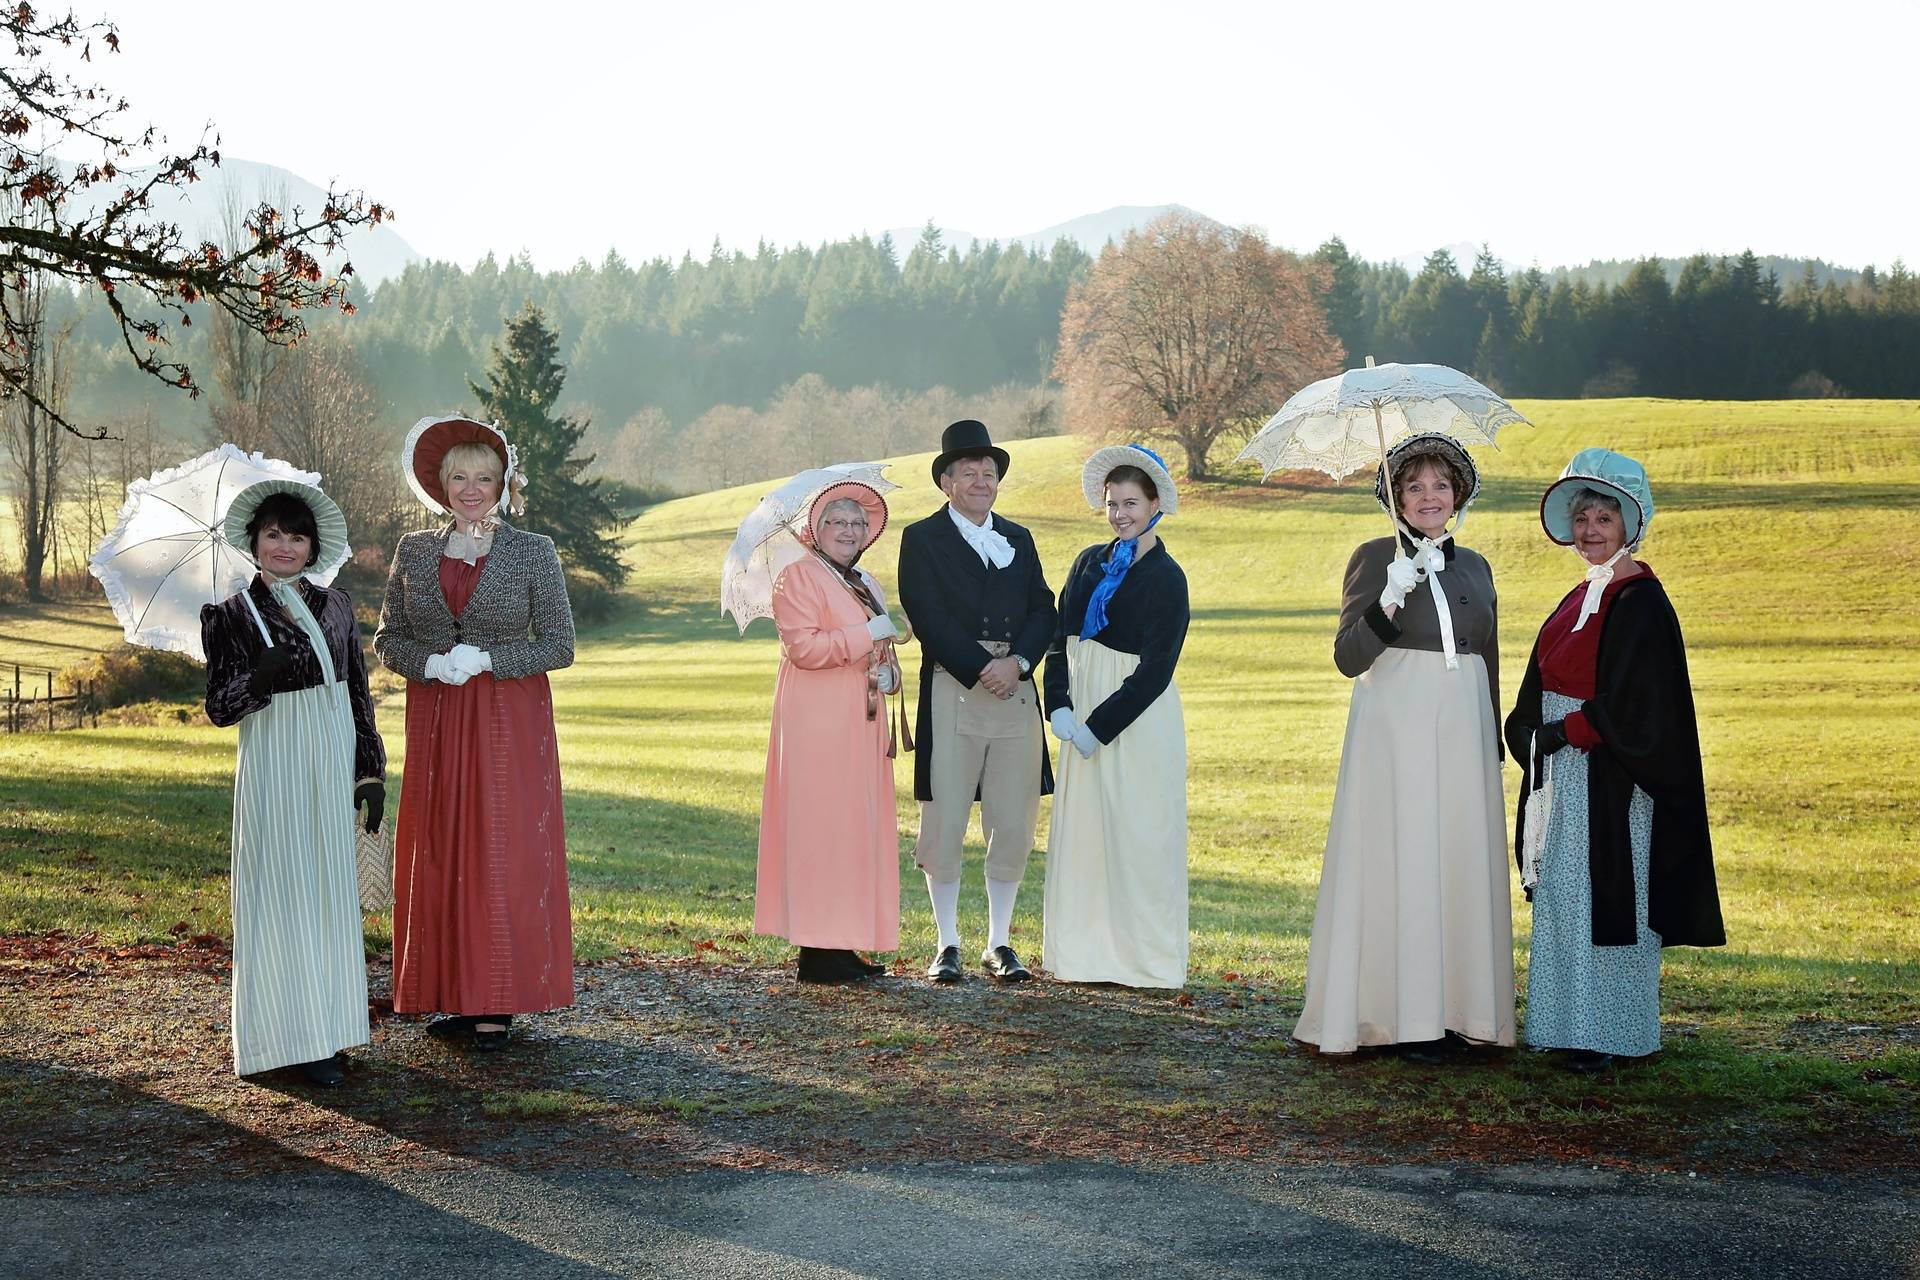 Port Alberni goes for the #Regency #Costuming World Record!